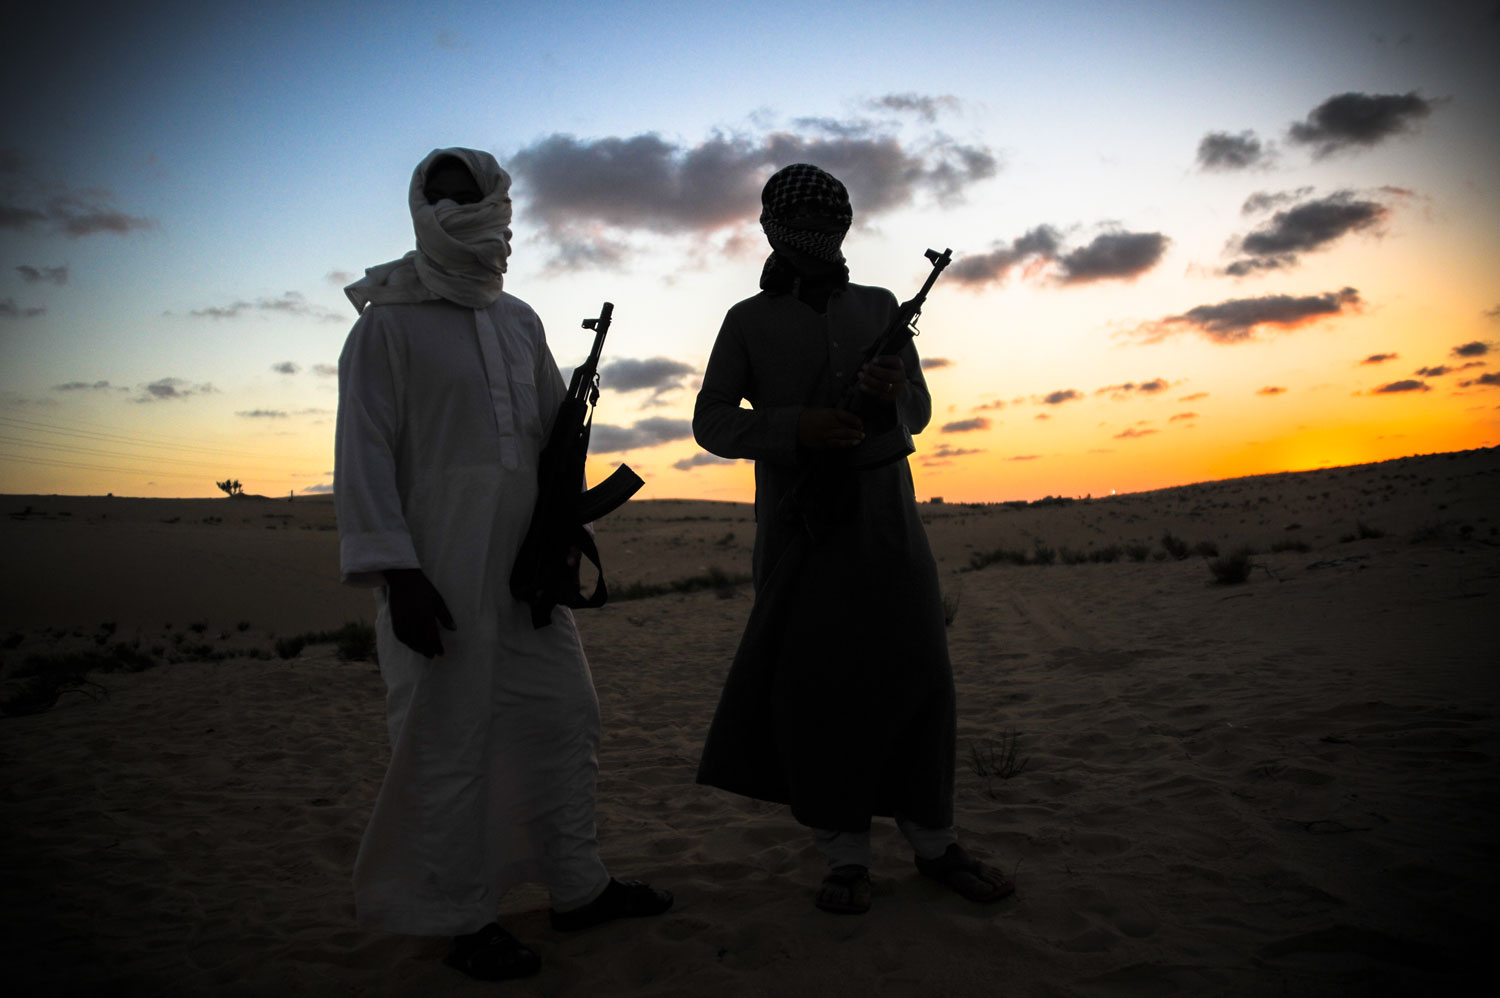 Militants in Sinai, September 2012. Photo: Getty images/Mosa'ab Elshamy